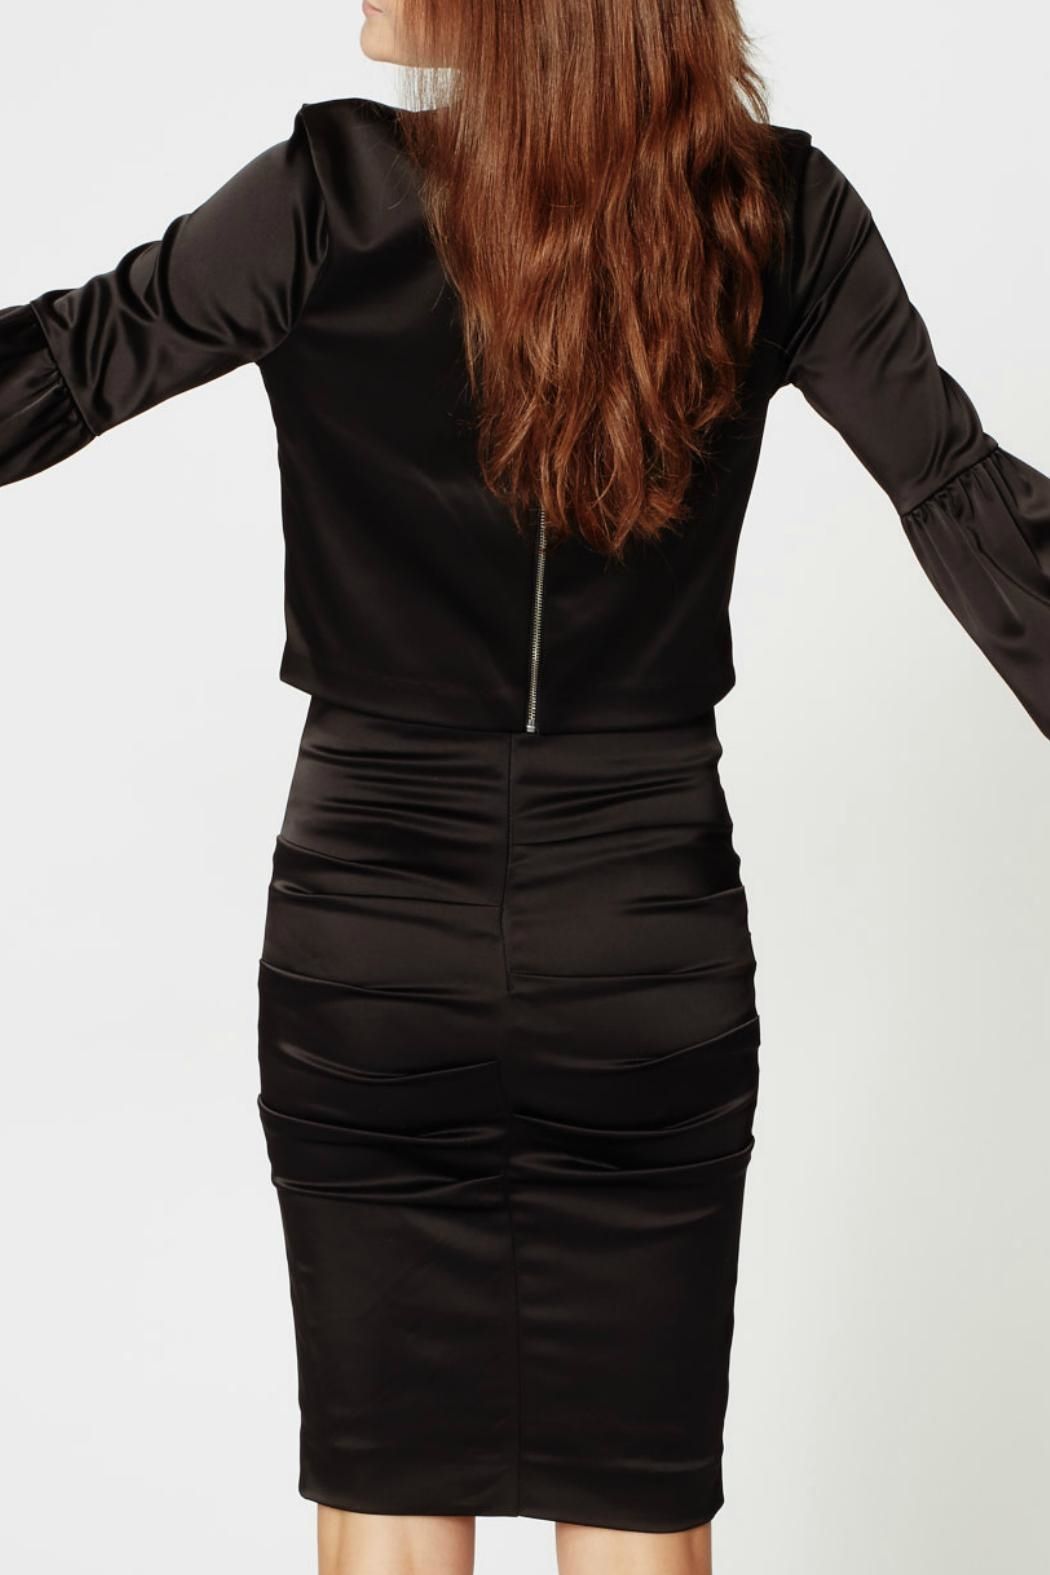 Nicole Miller Satin Ruched Skirt - Front Full Image